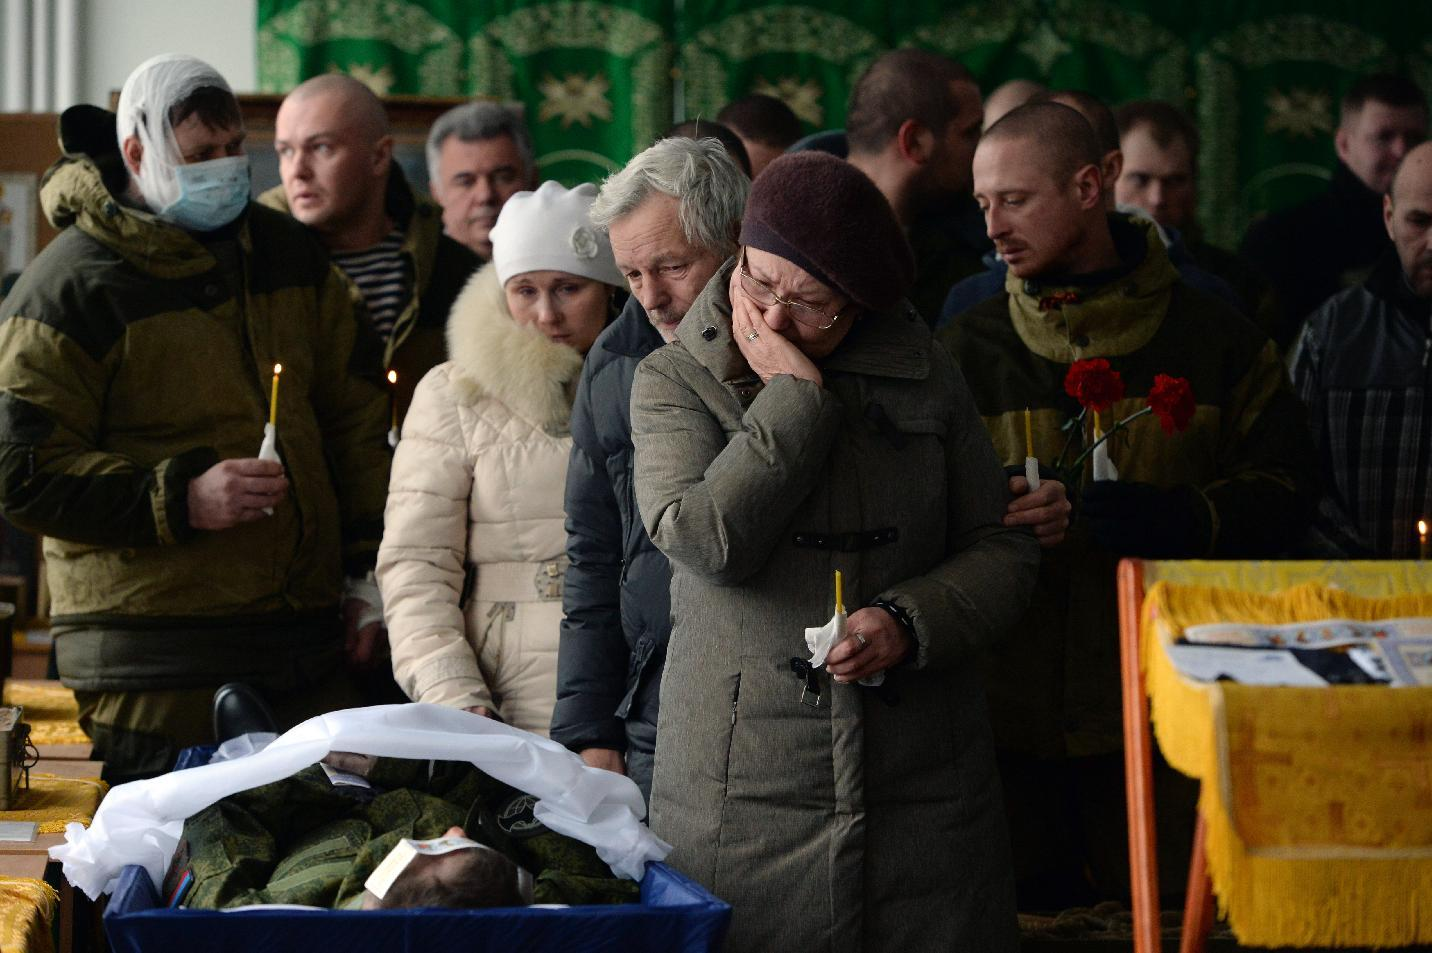 Pro-Russian separatists and relatives attend the funeral of several rebels at their military base in the eastern Ukrainian city of Donetsk on February 16, 2015 (AFP Photo/Vasily Maximov)